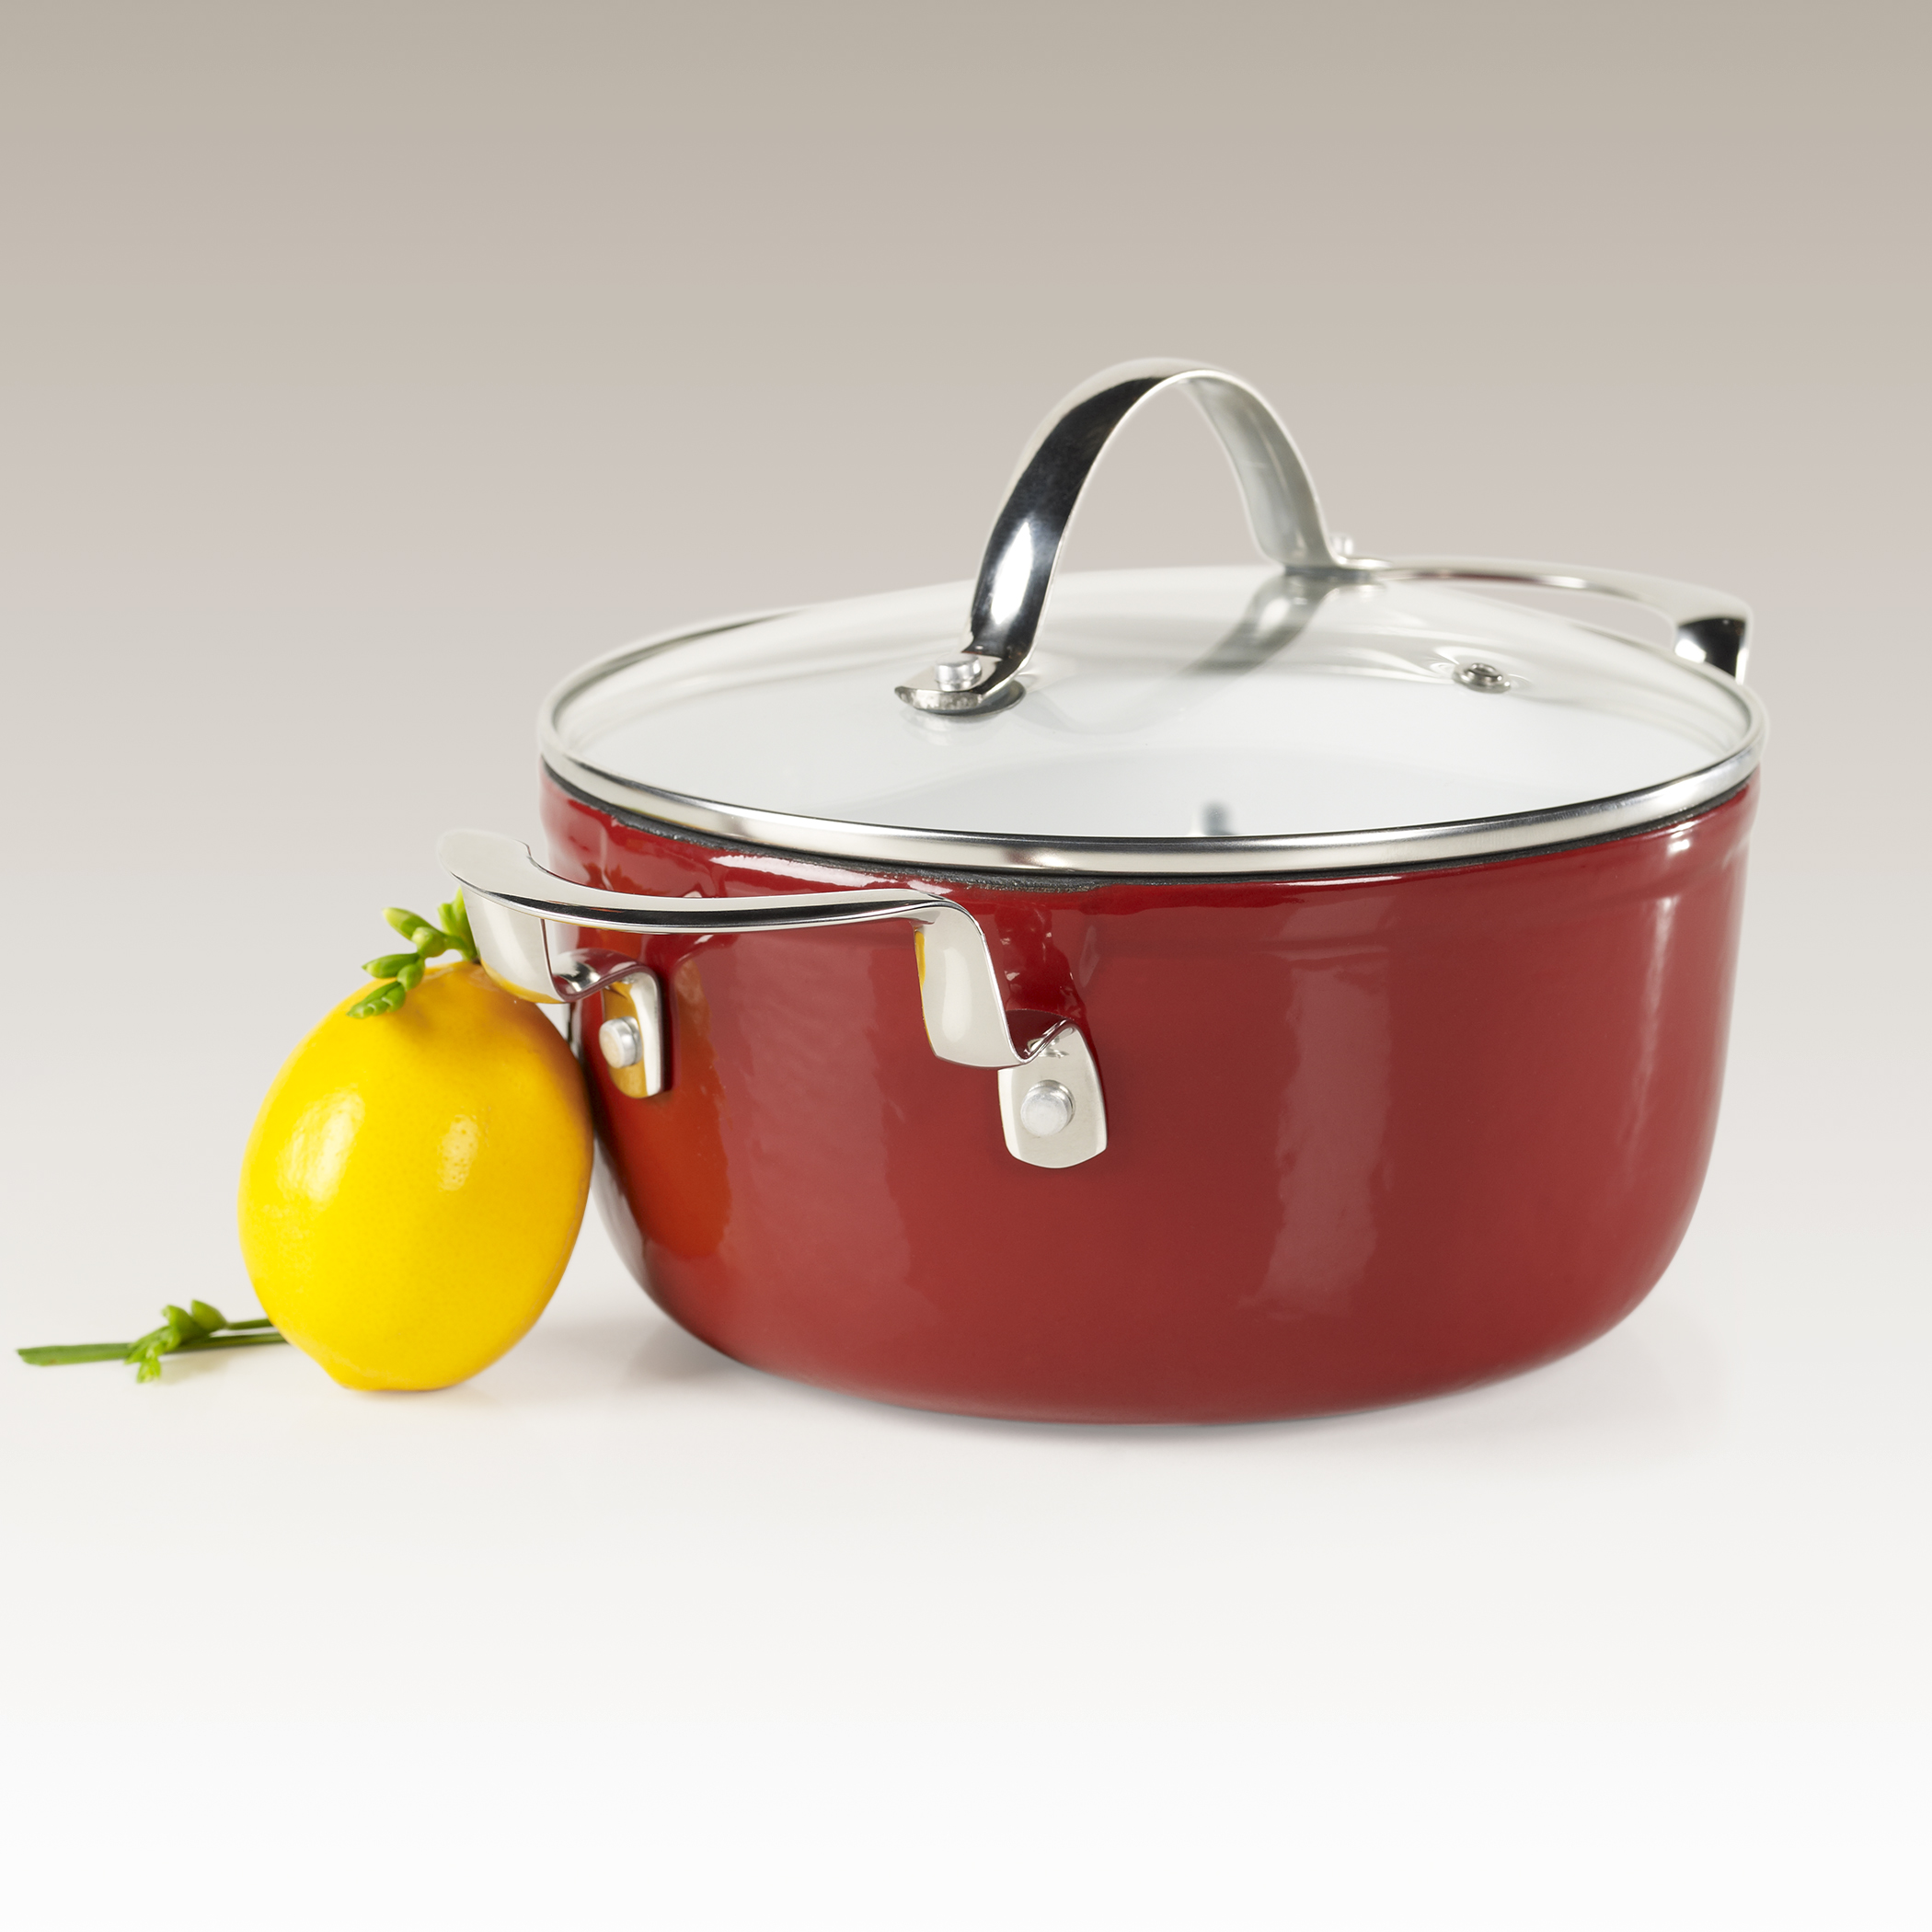 3 Quart Enamel Cast Iron Casserole by Philippe Richard